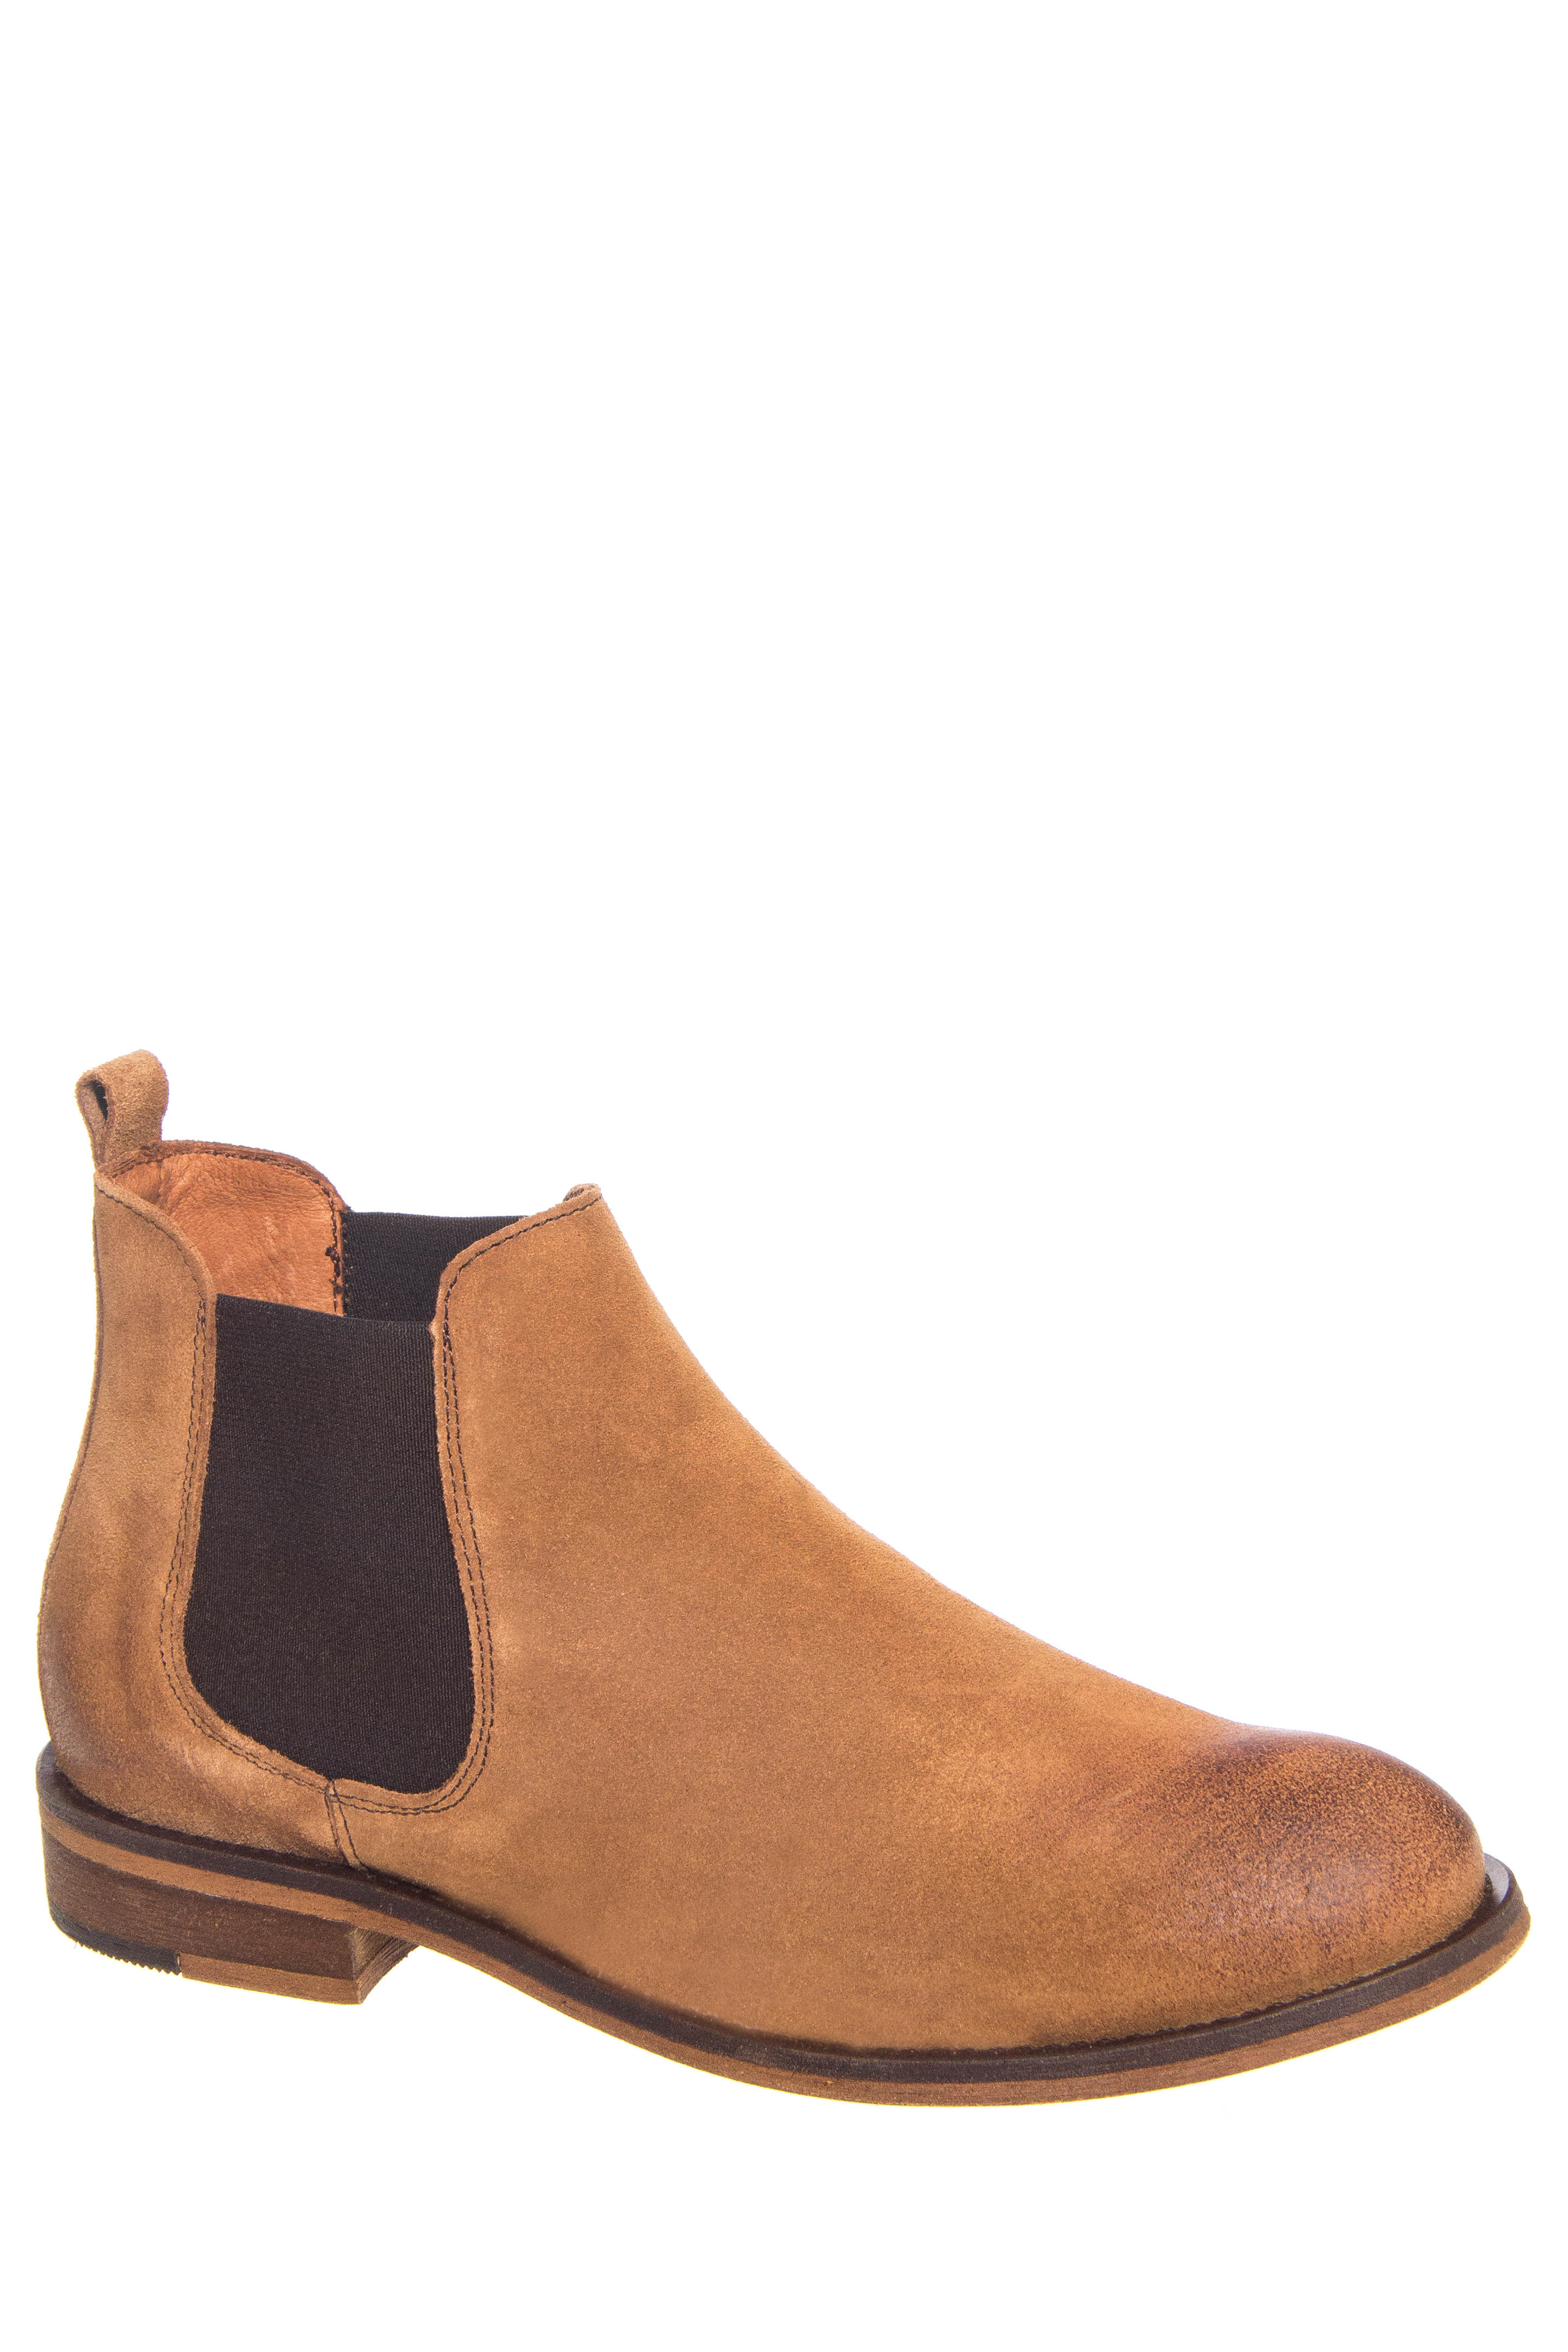 Wolverine 1000 Mile Jean Chelsea Boots - Camel Suede